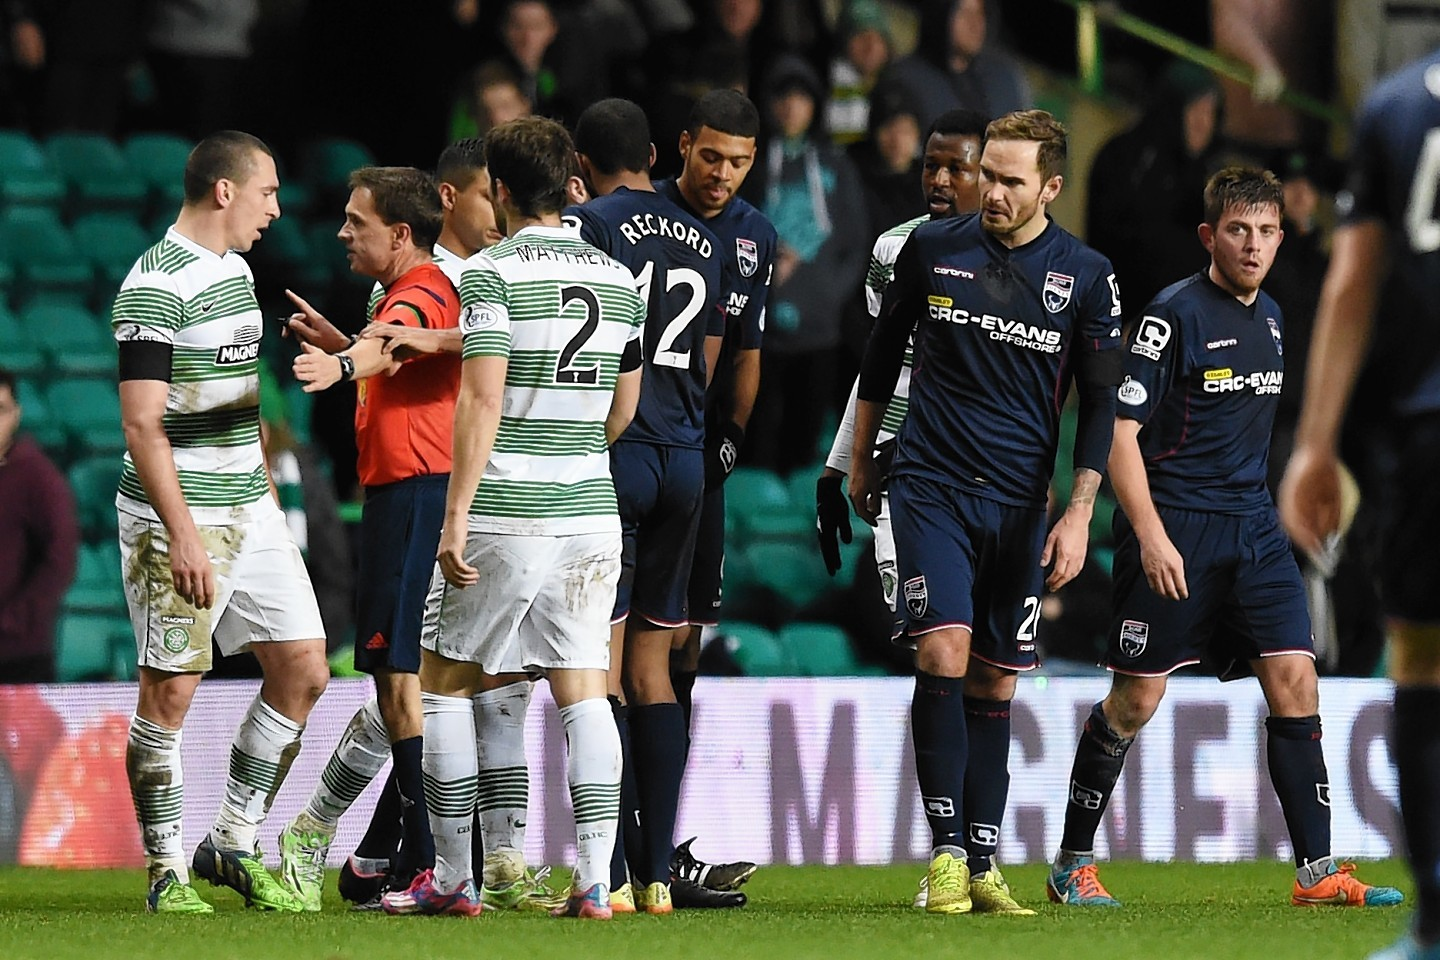 Ross County host Celtic this weekend